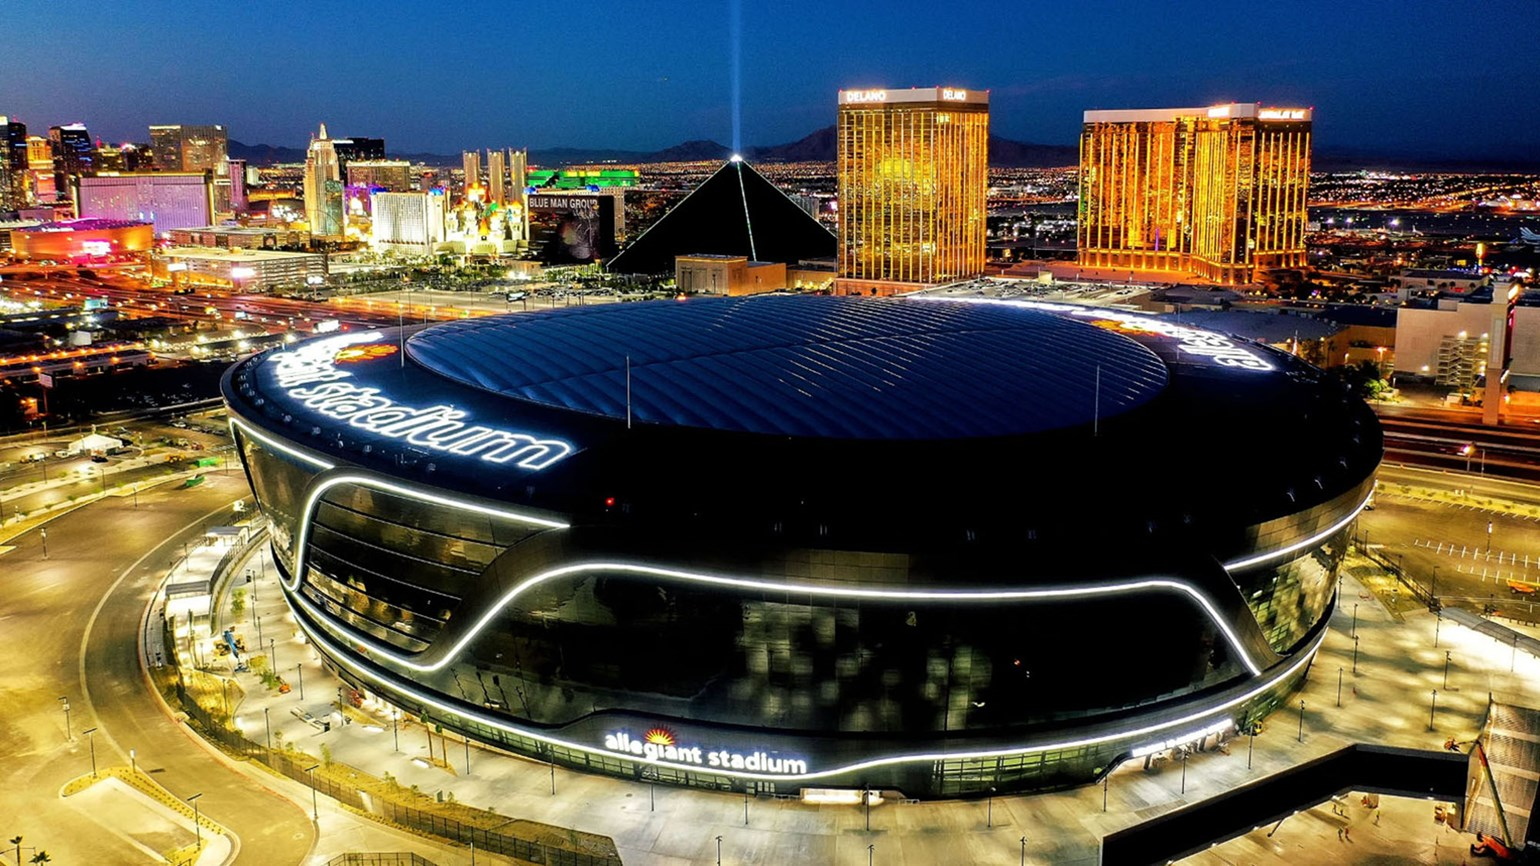 Tours offer an inside look at Vegas' Allegiant Stadium